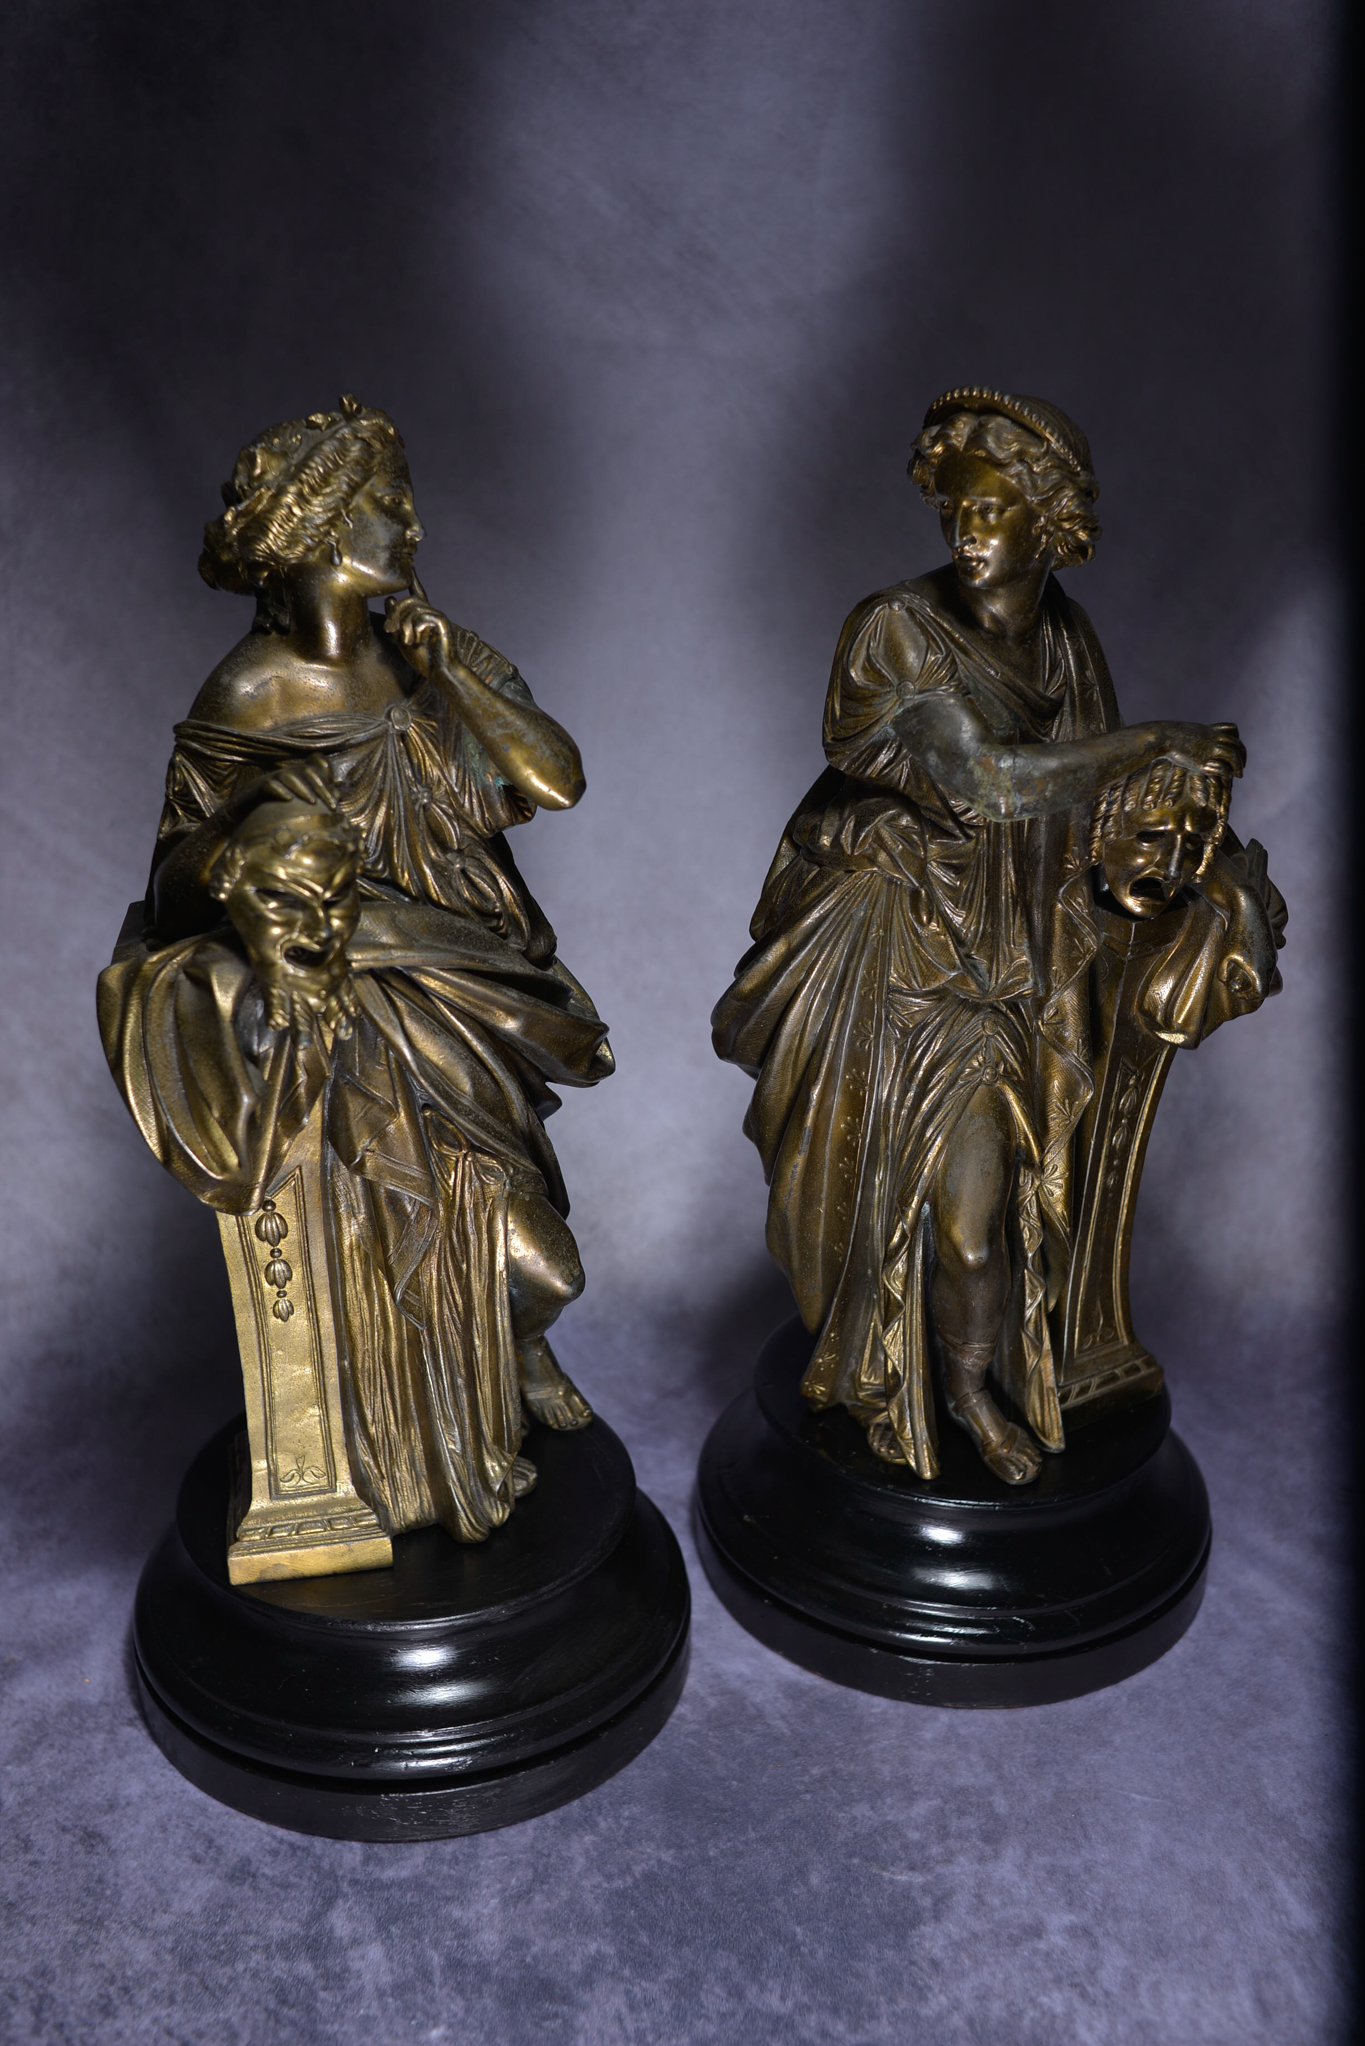 Lot 14 - A Beautiful Pair Of 19Th Century Spelter Theatrical Statuettes